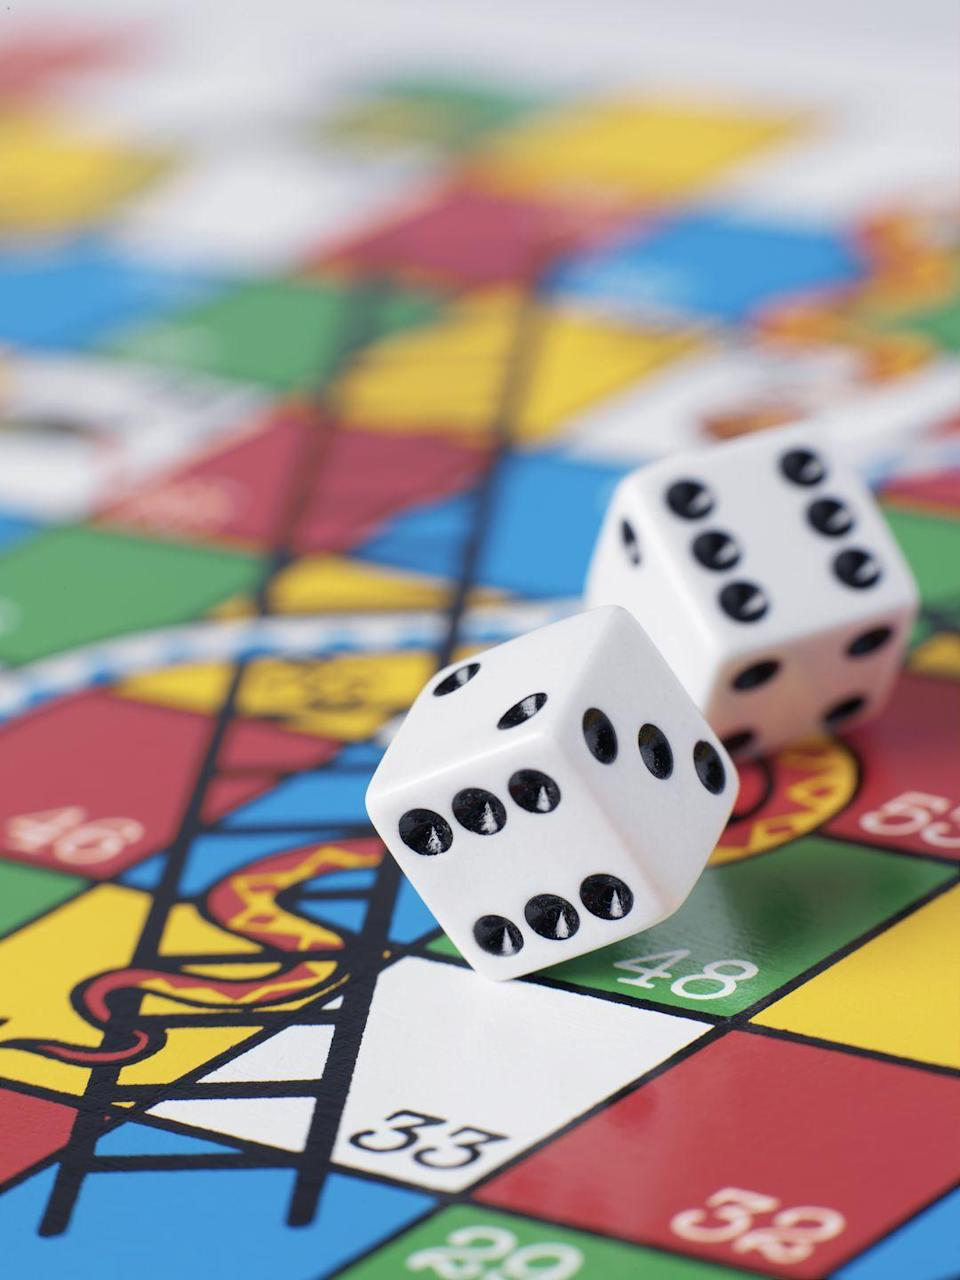 """<p>Looking for something that's fun for the whole family? Organize a game night with some of the <a href=""""https://www.goodhousekeeping.com/childrens-products/board-games/g899/best-board-games/"""" rel=""""nofollow noopener"""" target=""""_blank"""" data-ylk=""""slk:best board games"""" class=""""link rapid-noclick-resp"""">best board games </a>— and if you want to make it on theme with the holiday, try out some special patriotic games (like 4th of July bingo or some <a href=""""https://www.goodhousekeeping.com/holidays/g22022801/4th-of-july-trivia/"""" rel=""""nofollow noopener"""" target=""""_blank"""" data-ylk=""""slk:American-themed trivia"""" class=""""link rapid-noclick-resp"""">American-themed trivia</a>). </p>"""